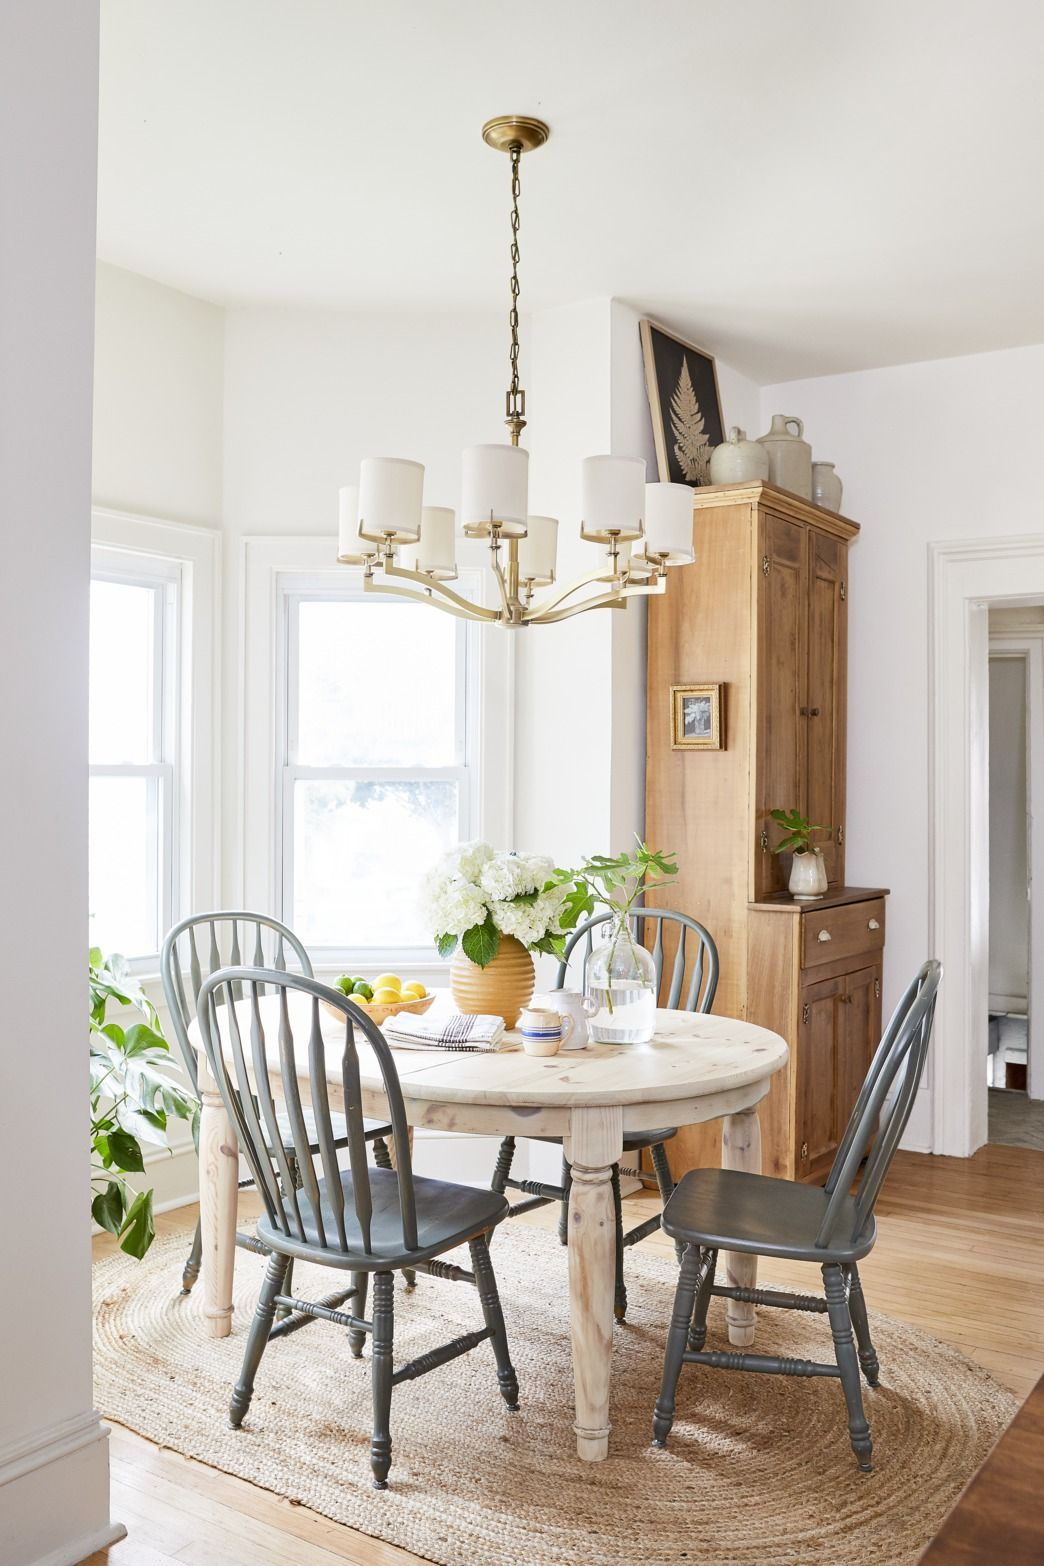 35 Best Breakfast Nook Ideas How To Design A Kitchen Breakfast Nook